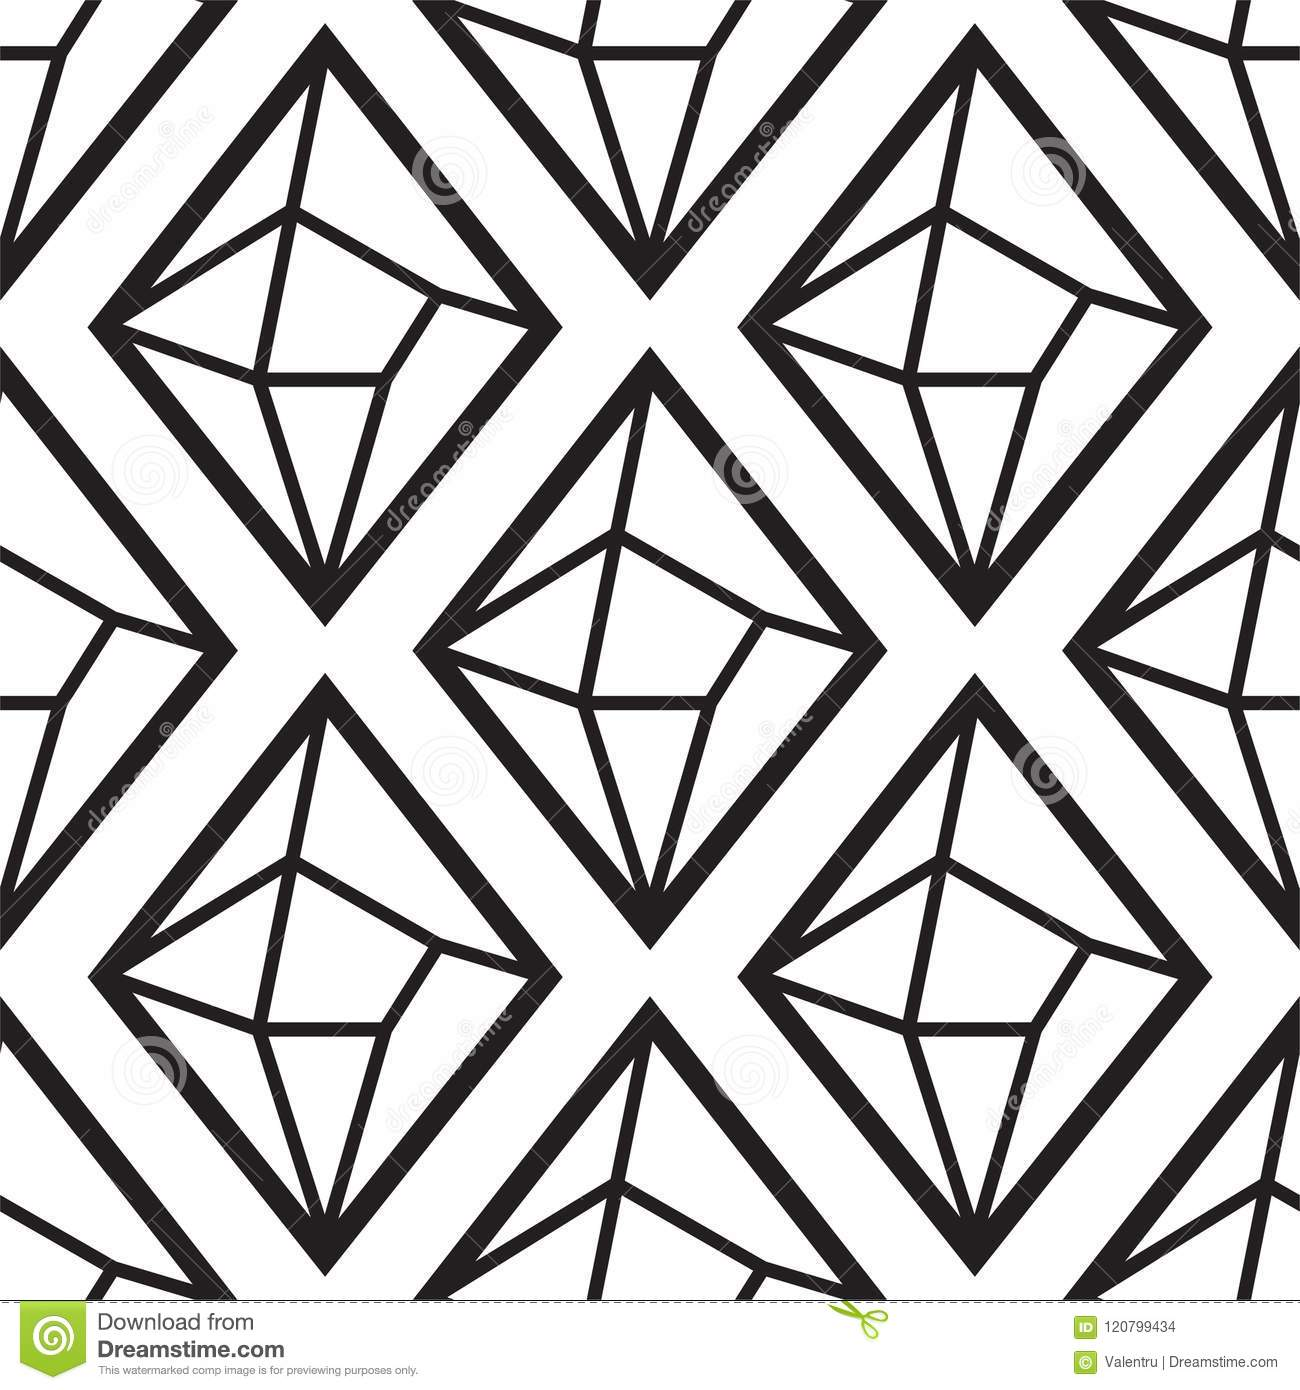 Diamond Or Crystal Seamless Pattern Geometric Style Black And White Outline Wallpaper